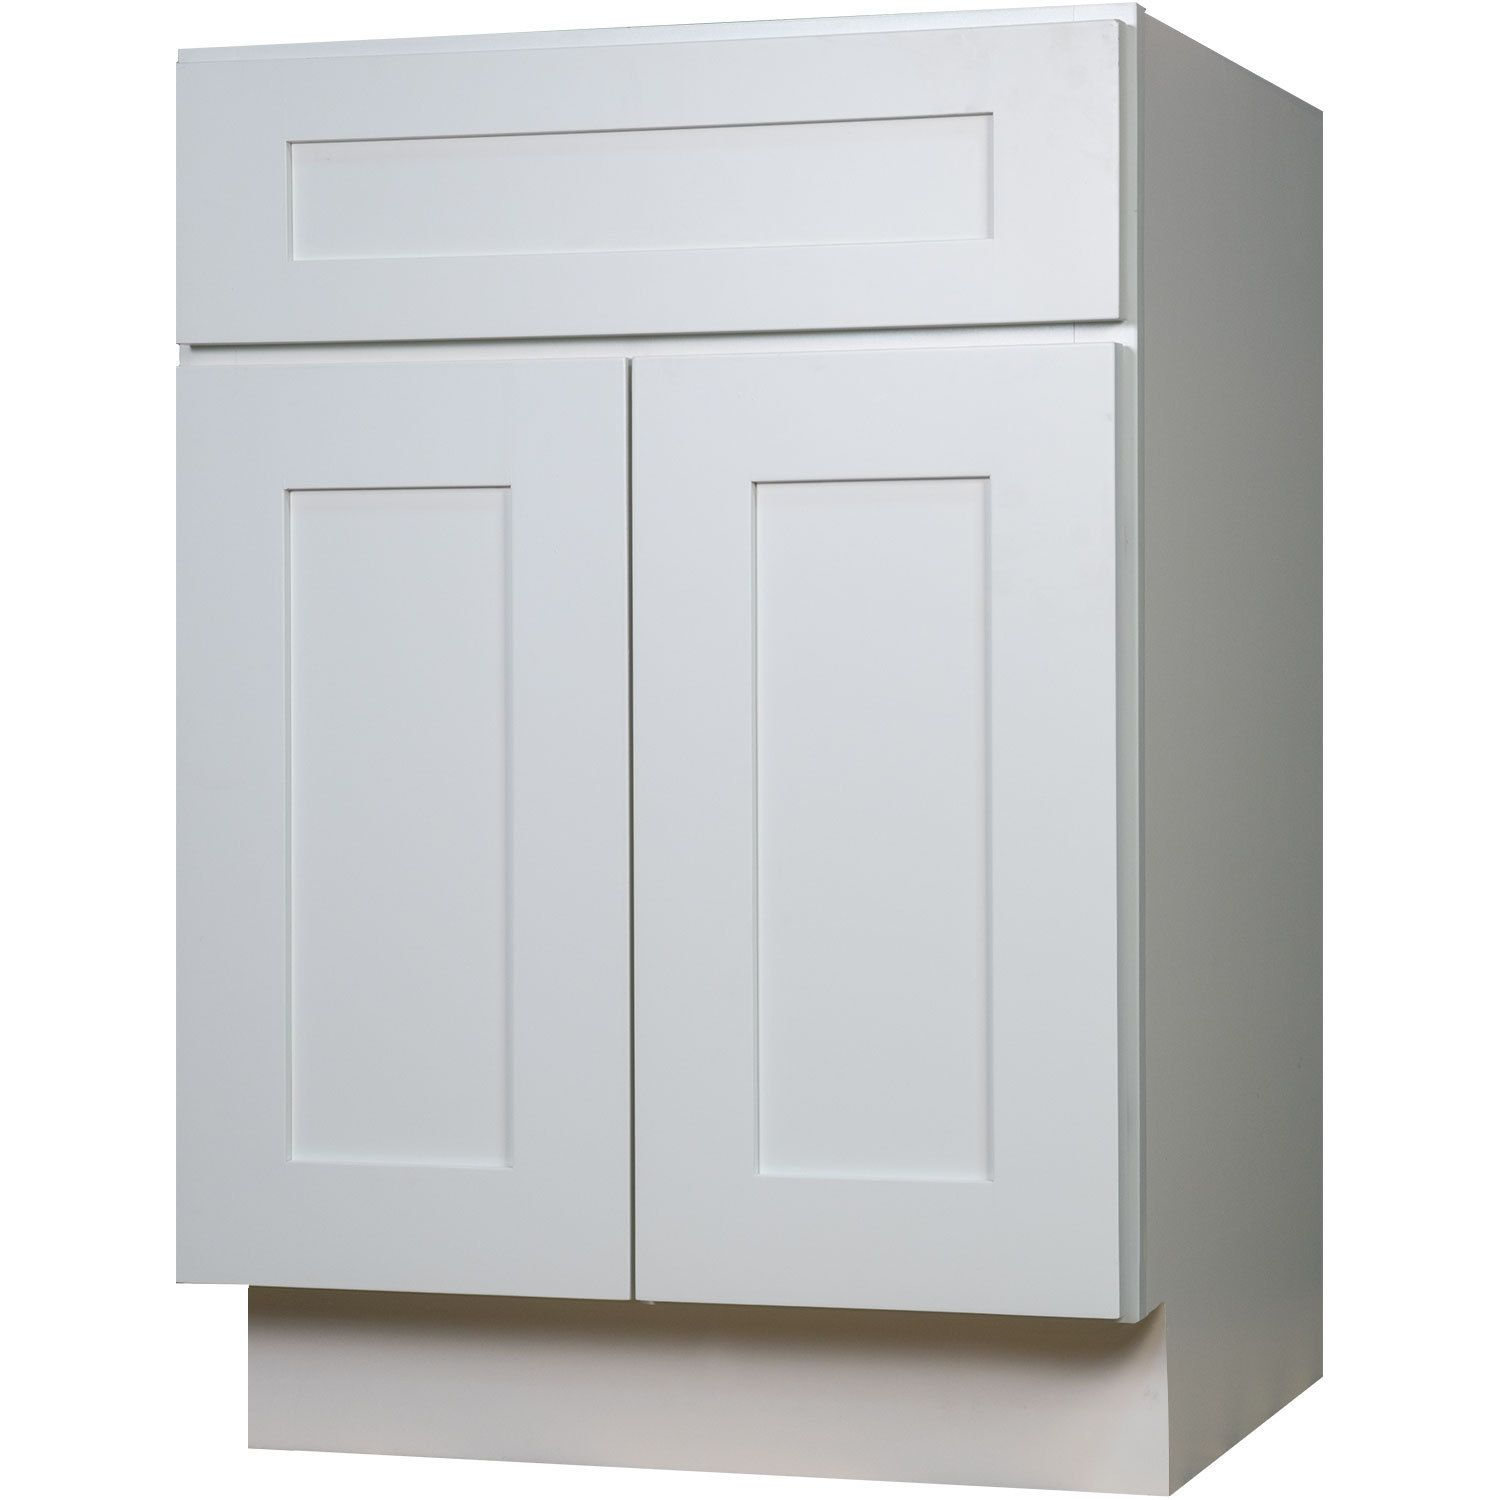 Everyday Cabinets SWHV2721 White Wood 27-inch Single Sink Bathroom ...